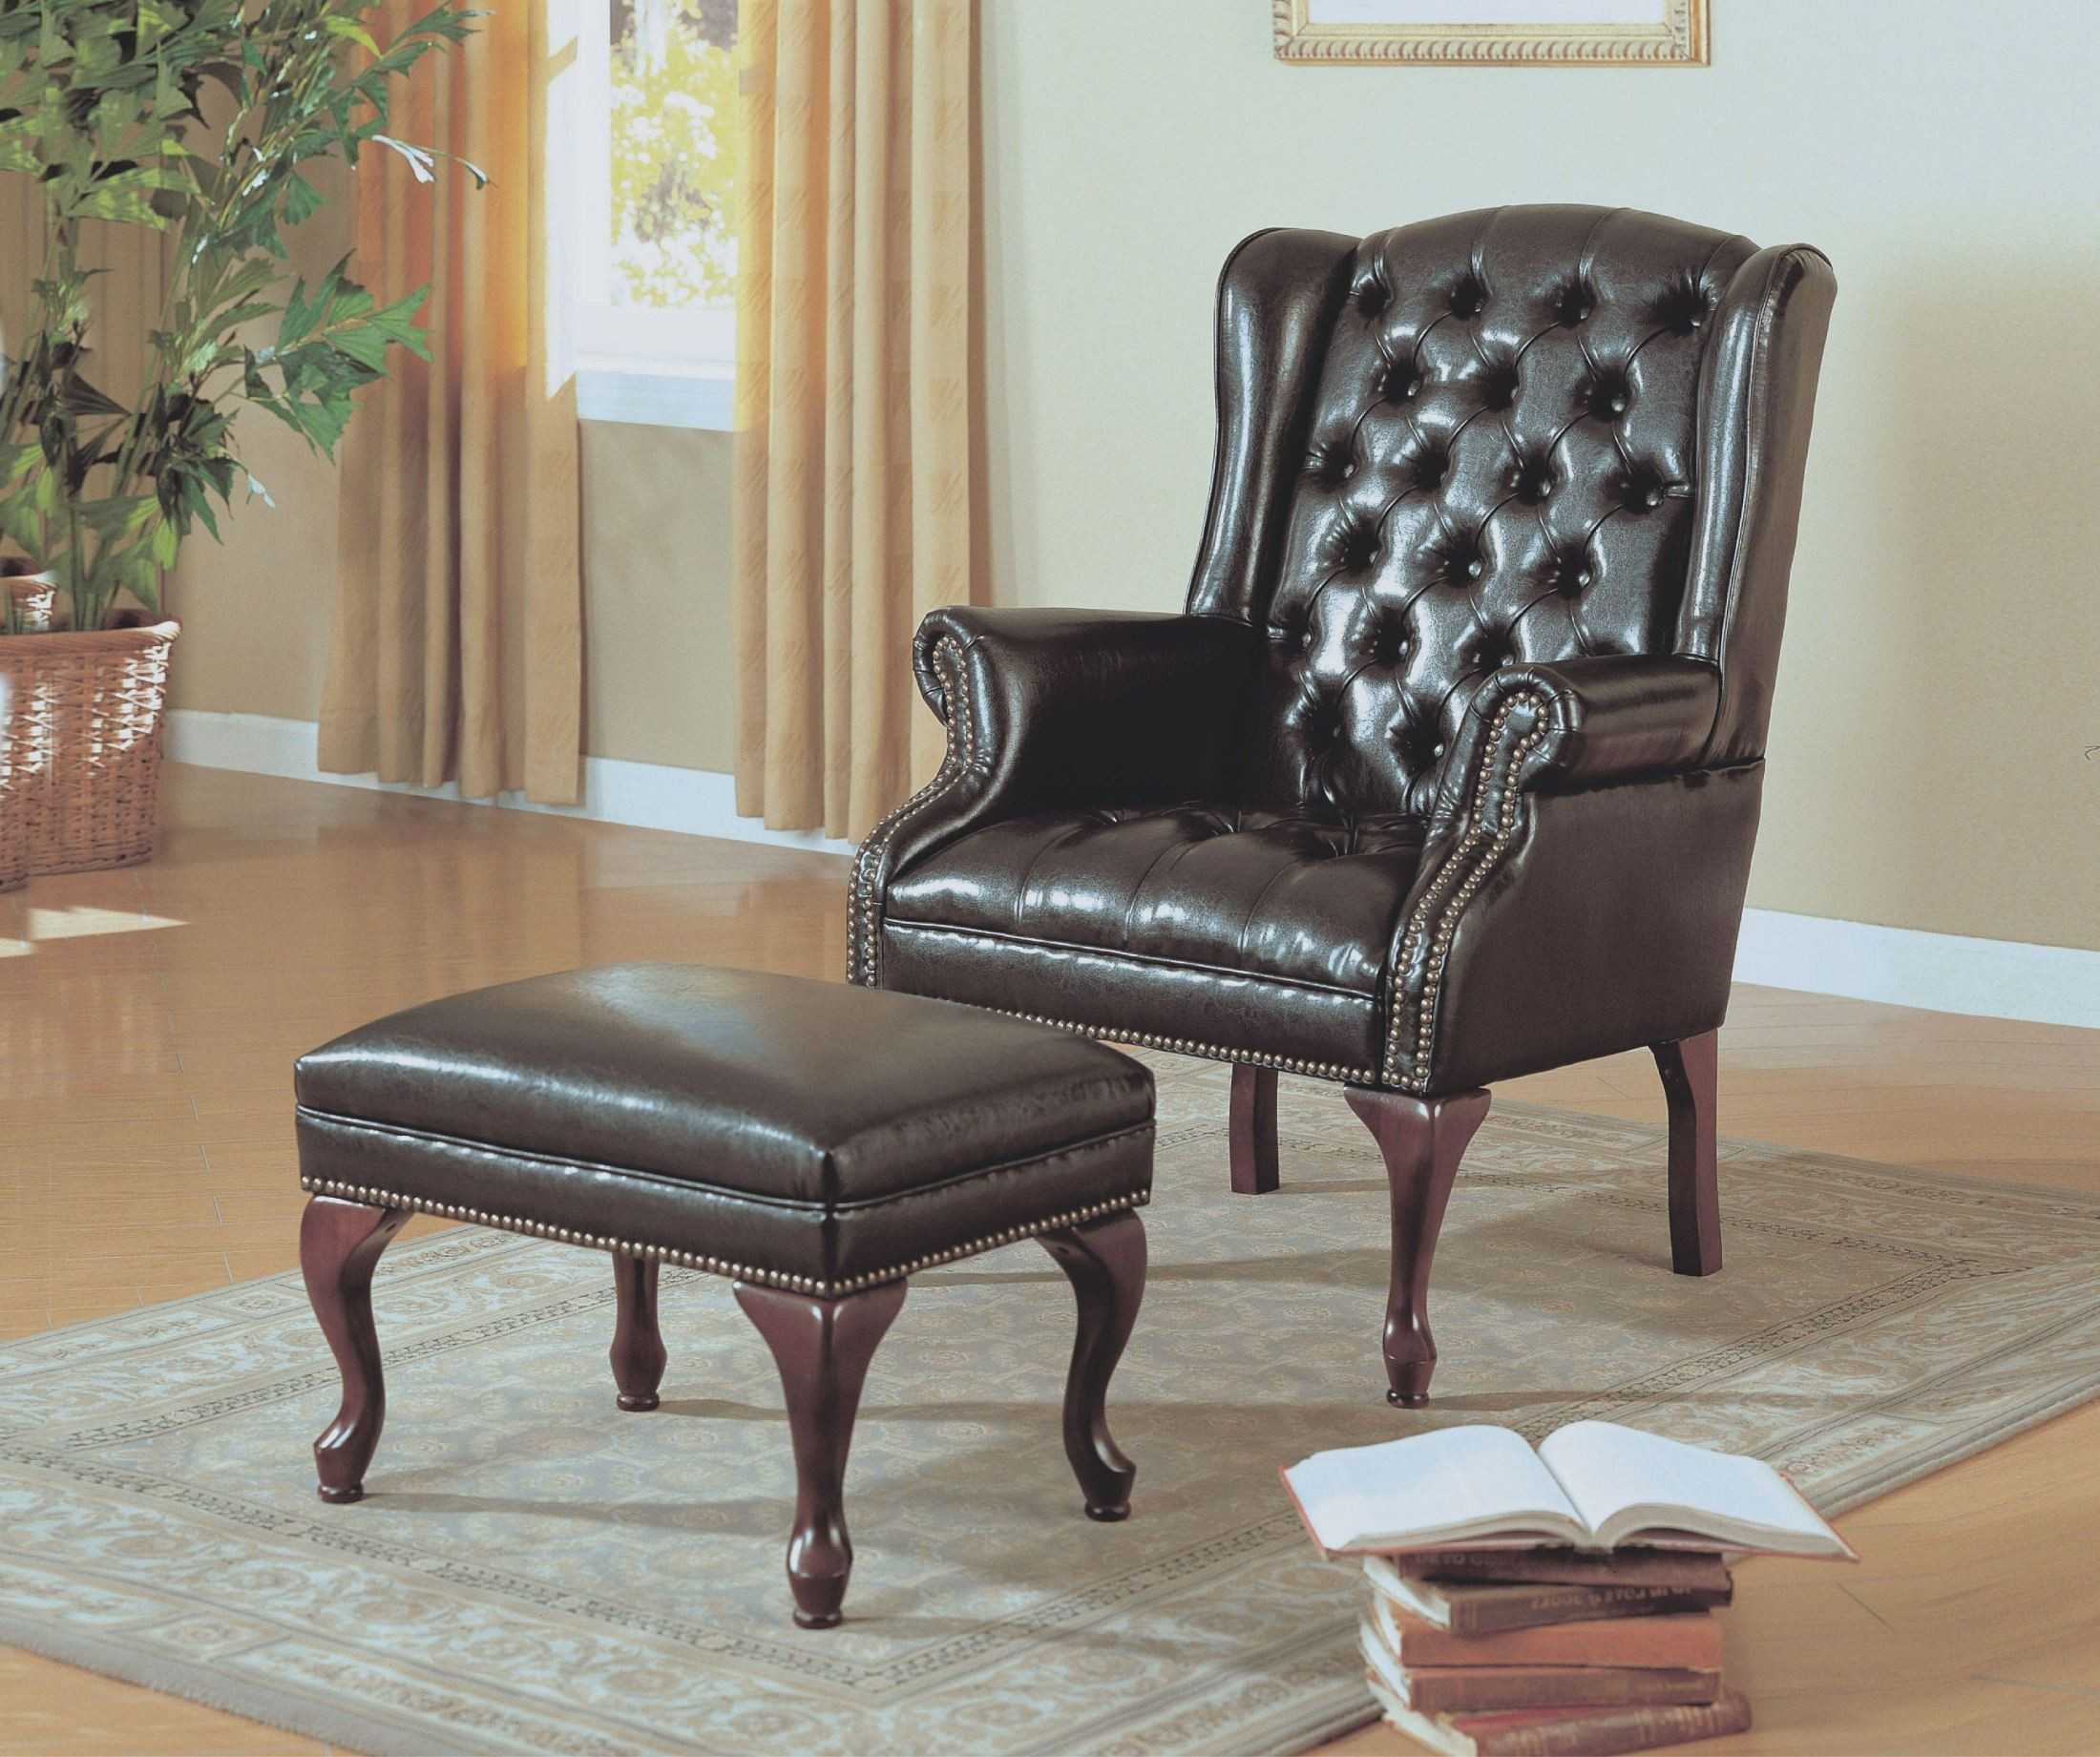 Brown Leather Wingback Chair Dark Brown Leather Look Wing Chair With Ottoman 8090 Monarch